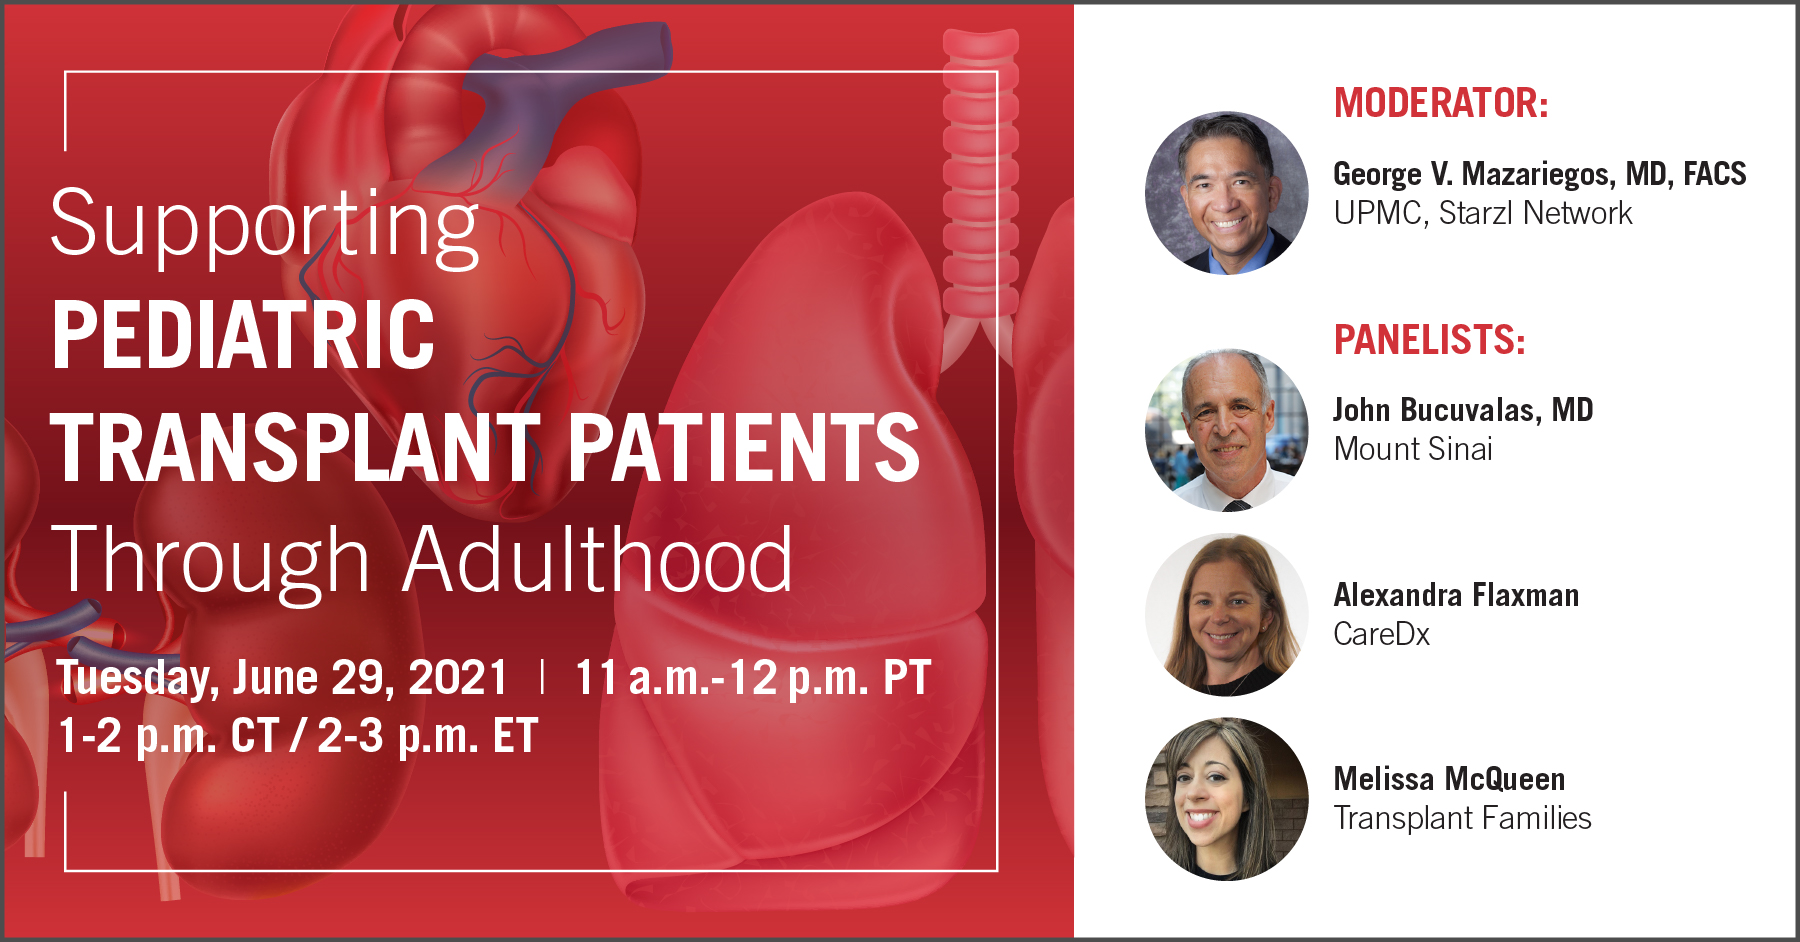 Supporting Pediatric Transplant Patients Through Adulthood